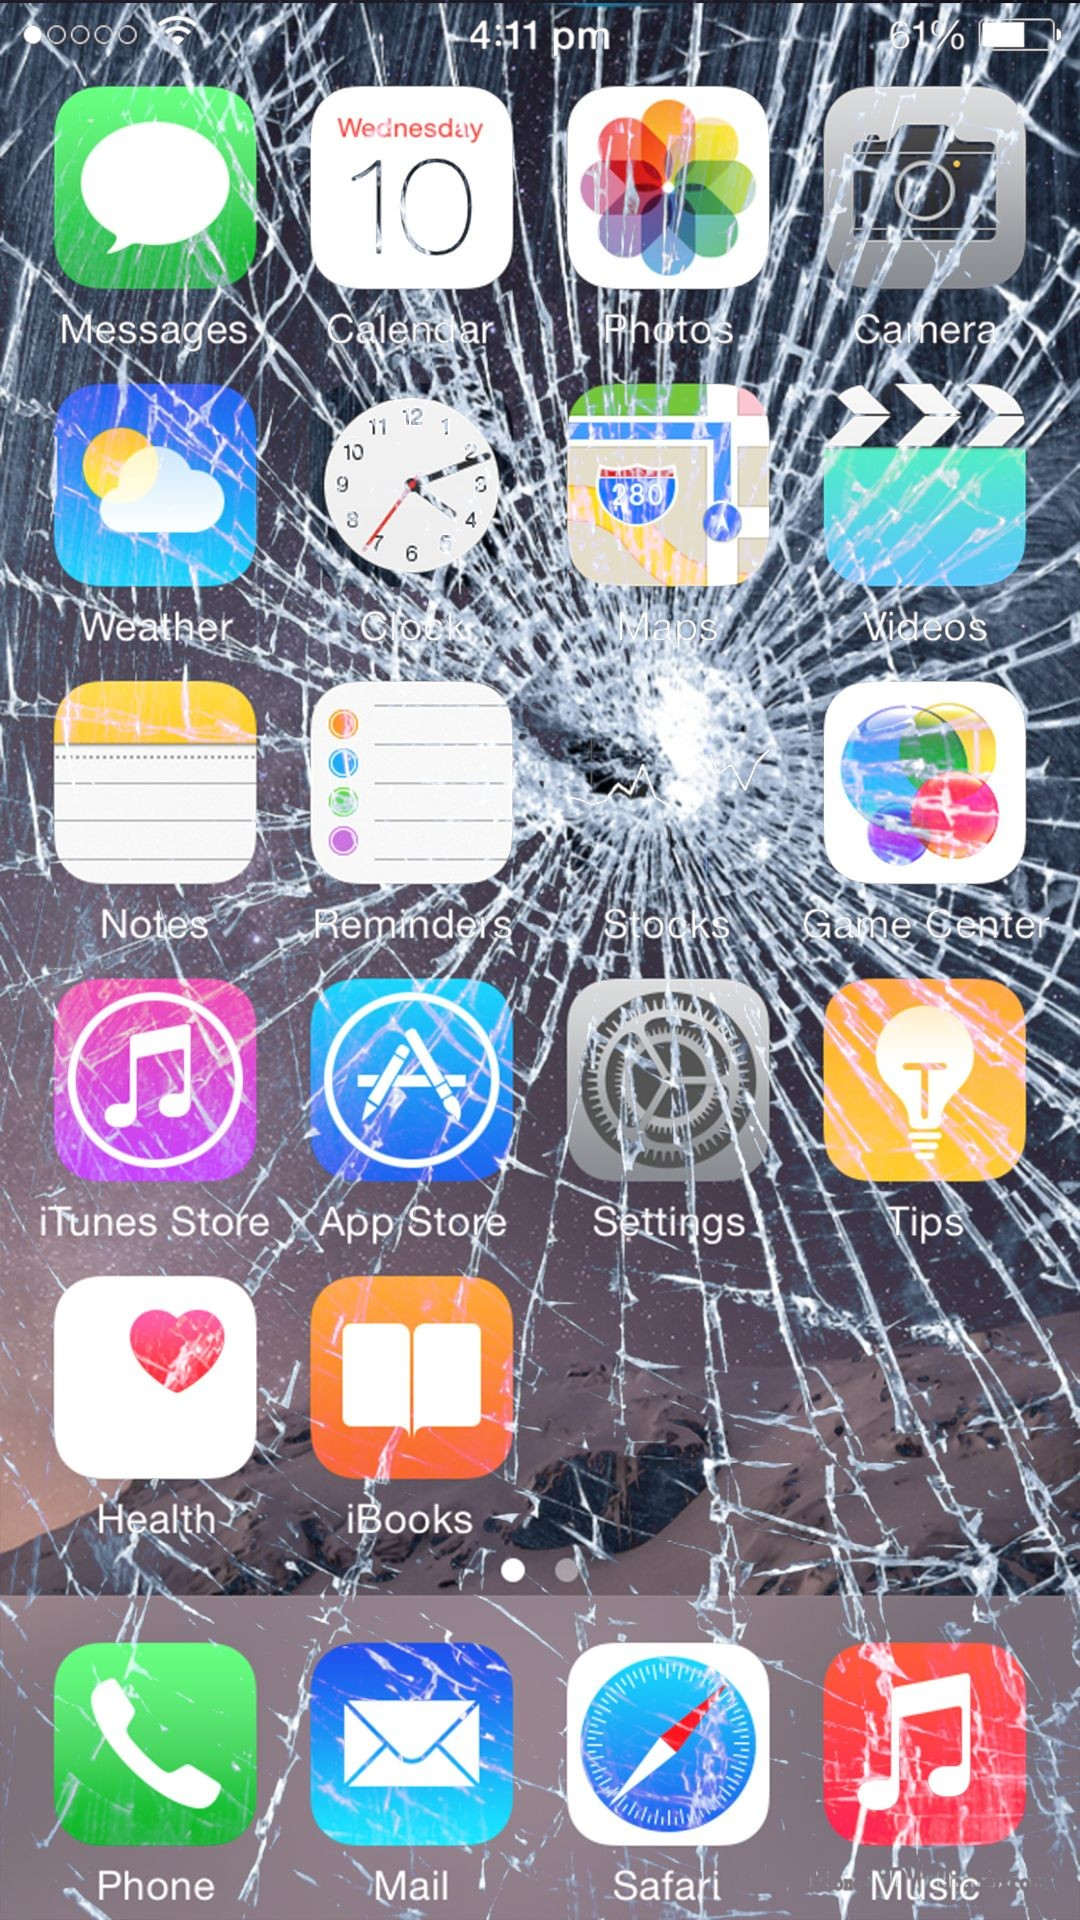 Broken Screen Wallpaper For Iphone 7 Plus Cracked Iphone Home Screen 491793 Hd Wallpaper Backgrounds Download